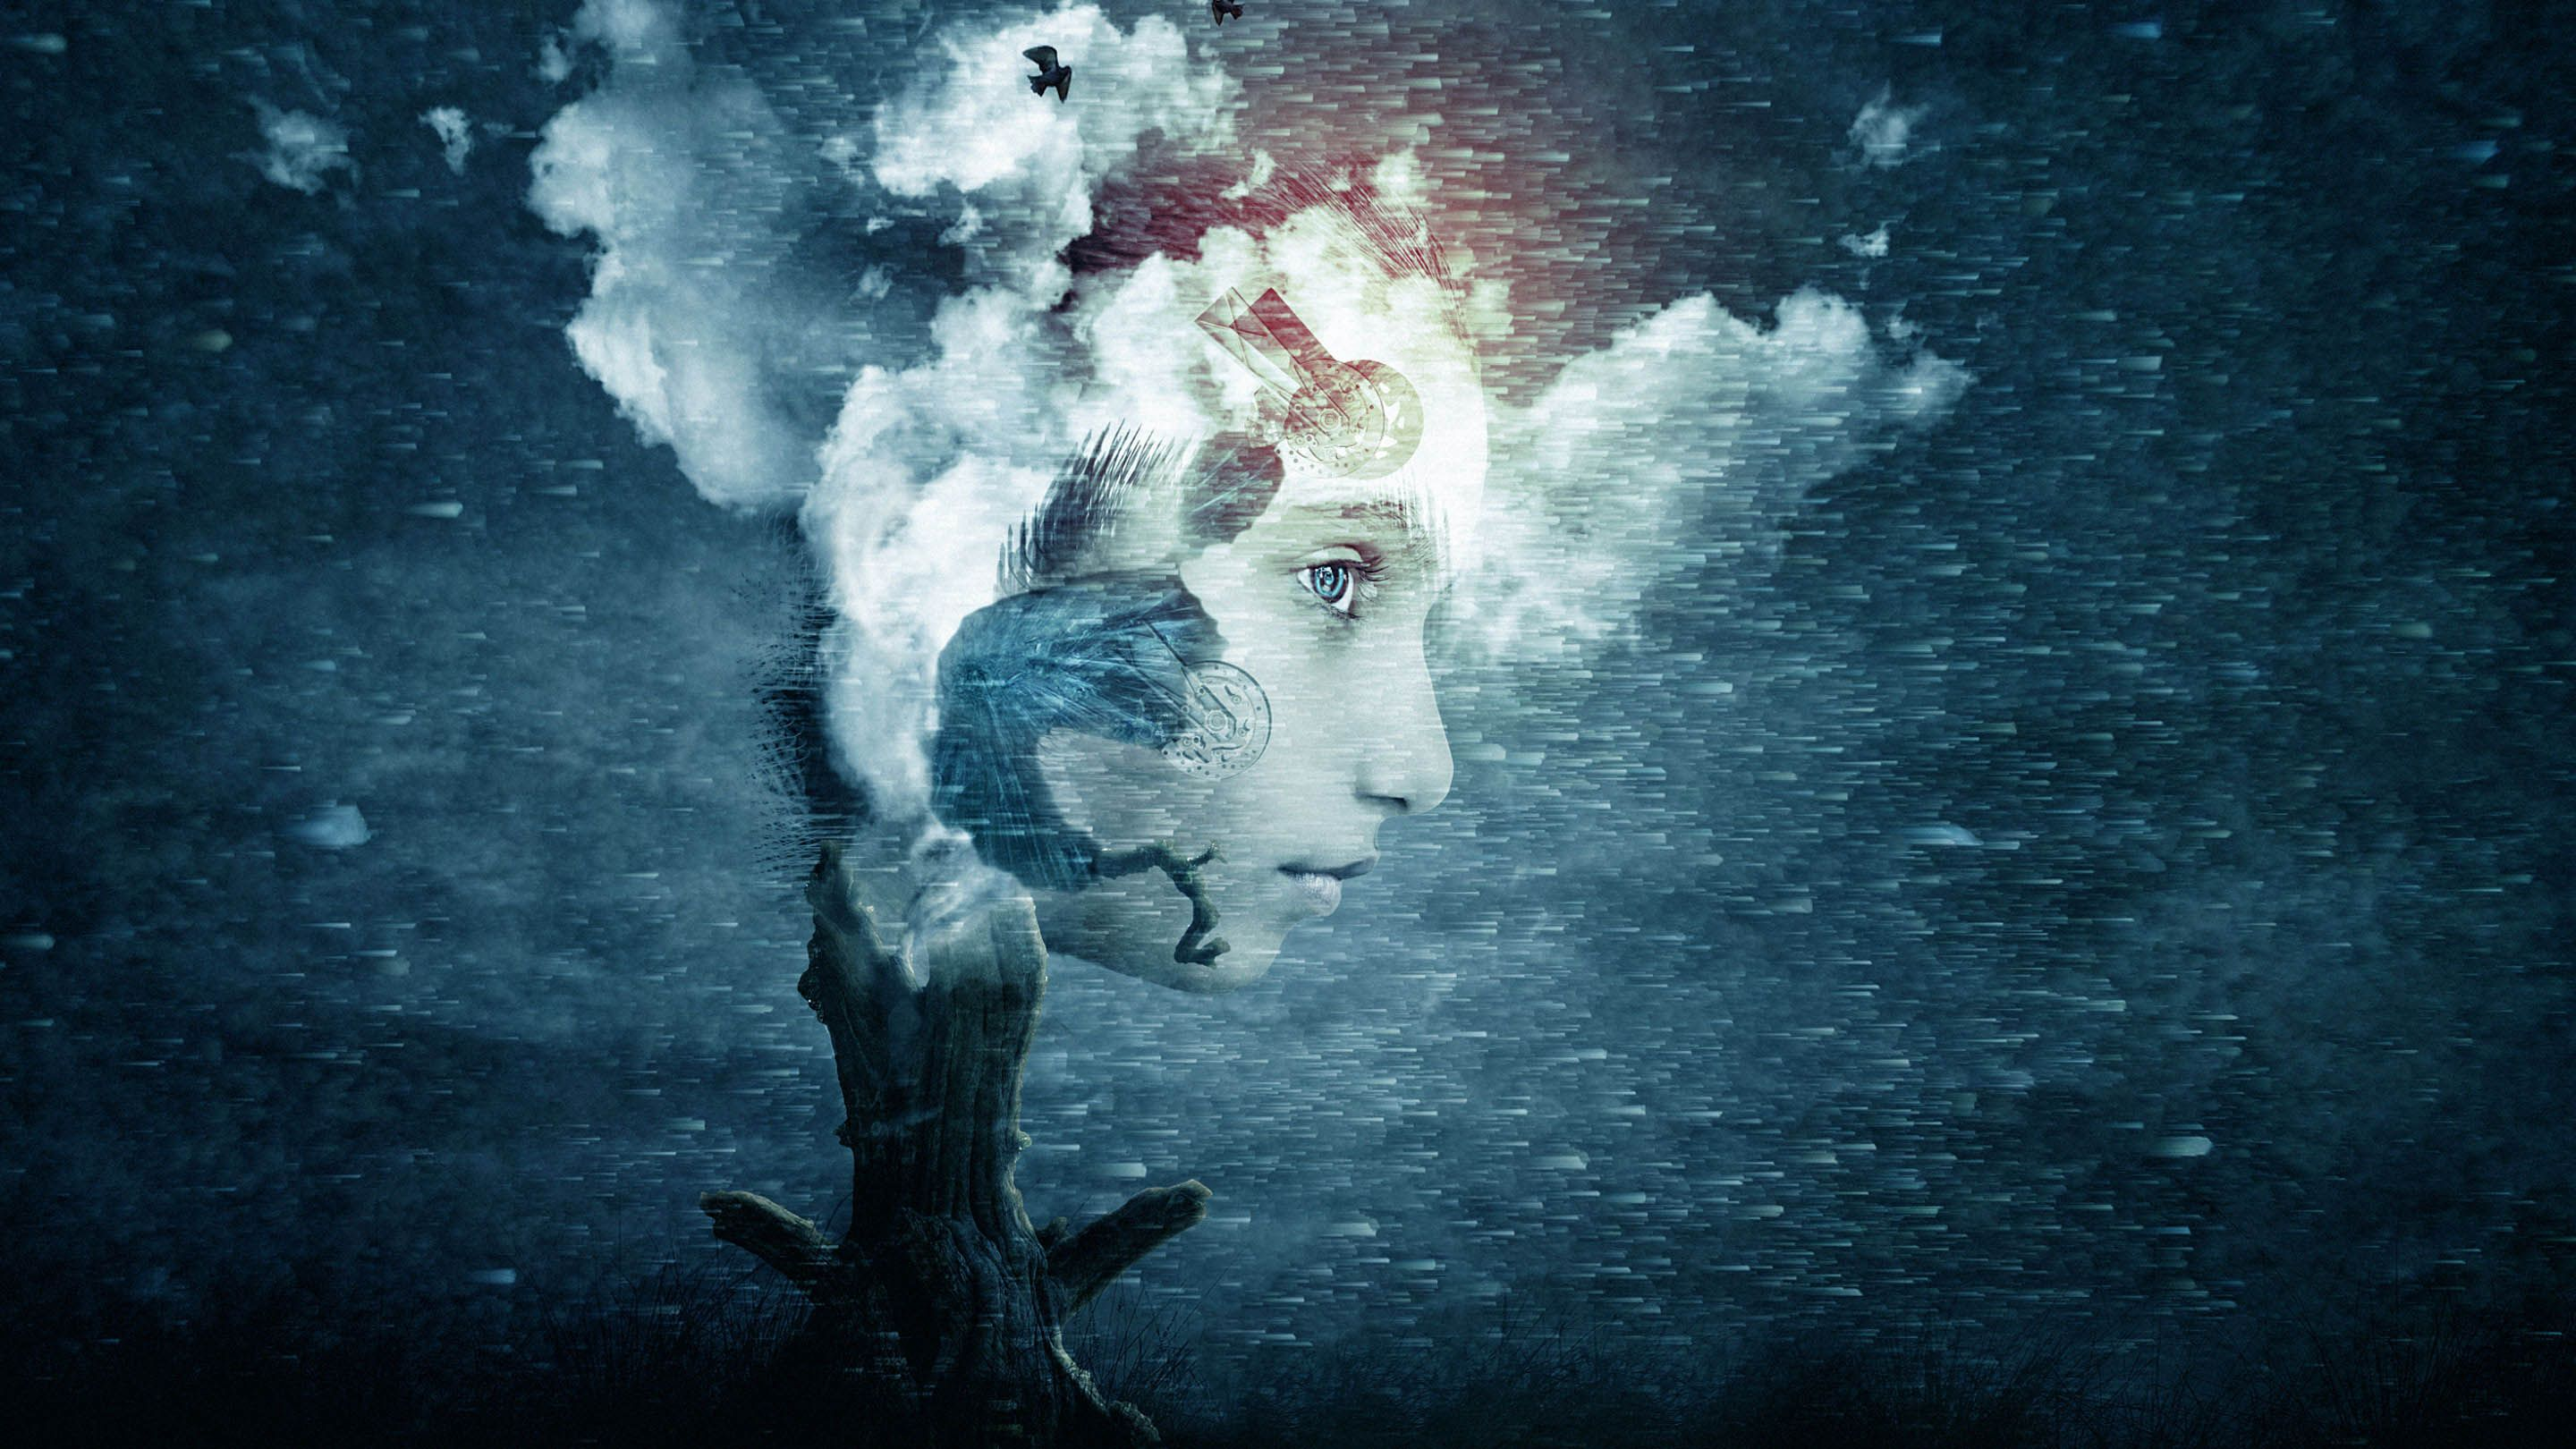 Illustration of a dark and beautiful storm behind a young person's face